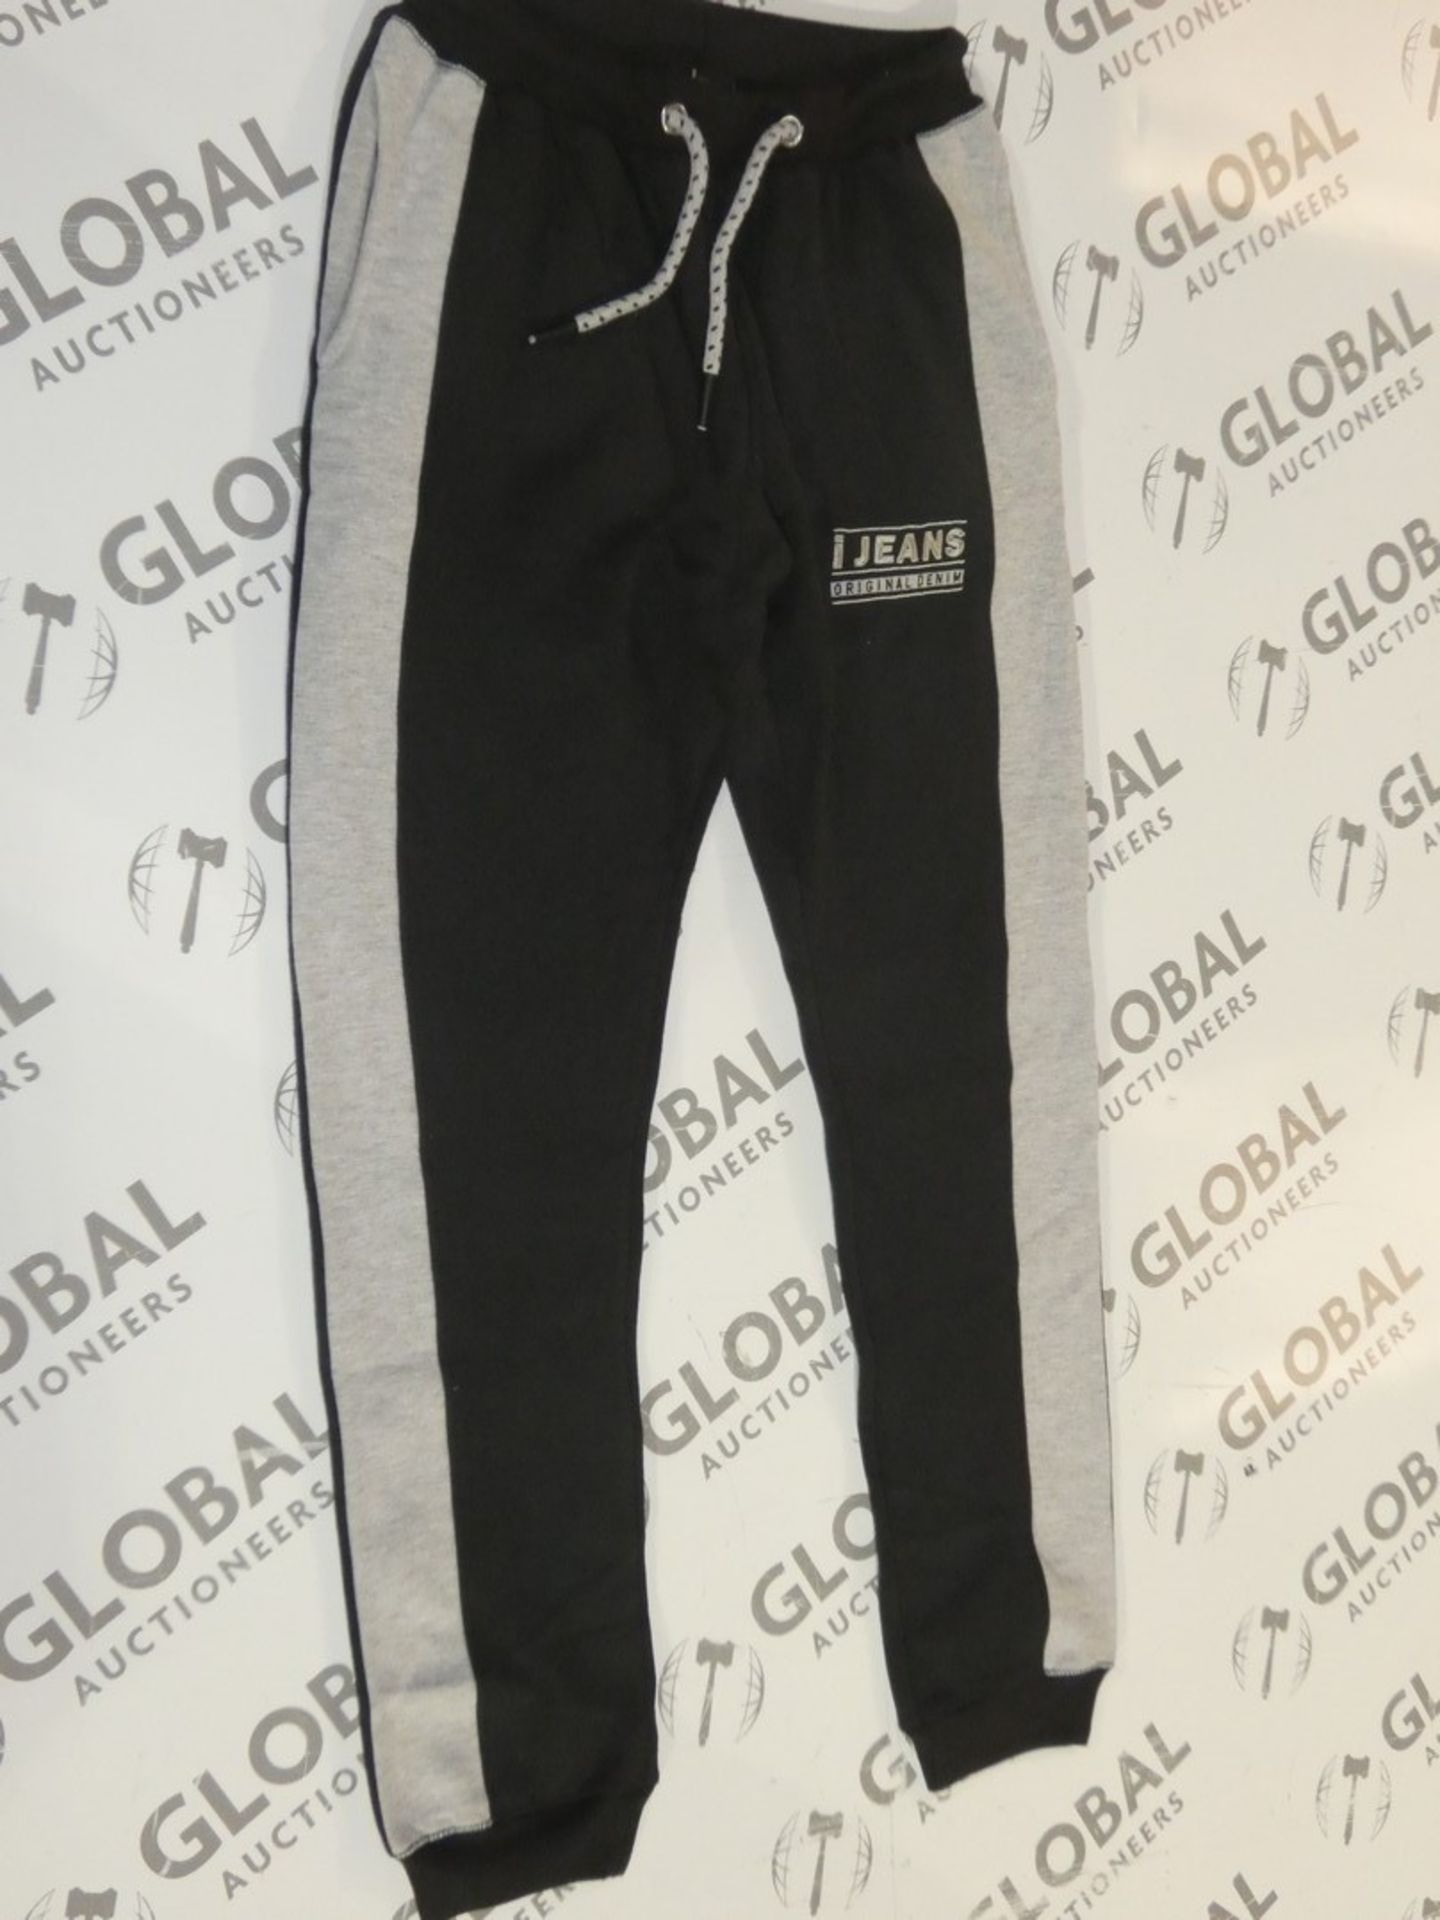 Lot 167 - Assorted Brand New Pairs Of Ijeans Original Denim Black Lounging Pants In Assorted Sizes RRP £25 A